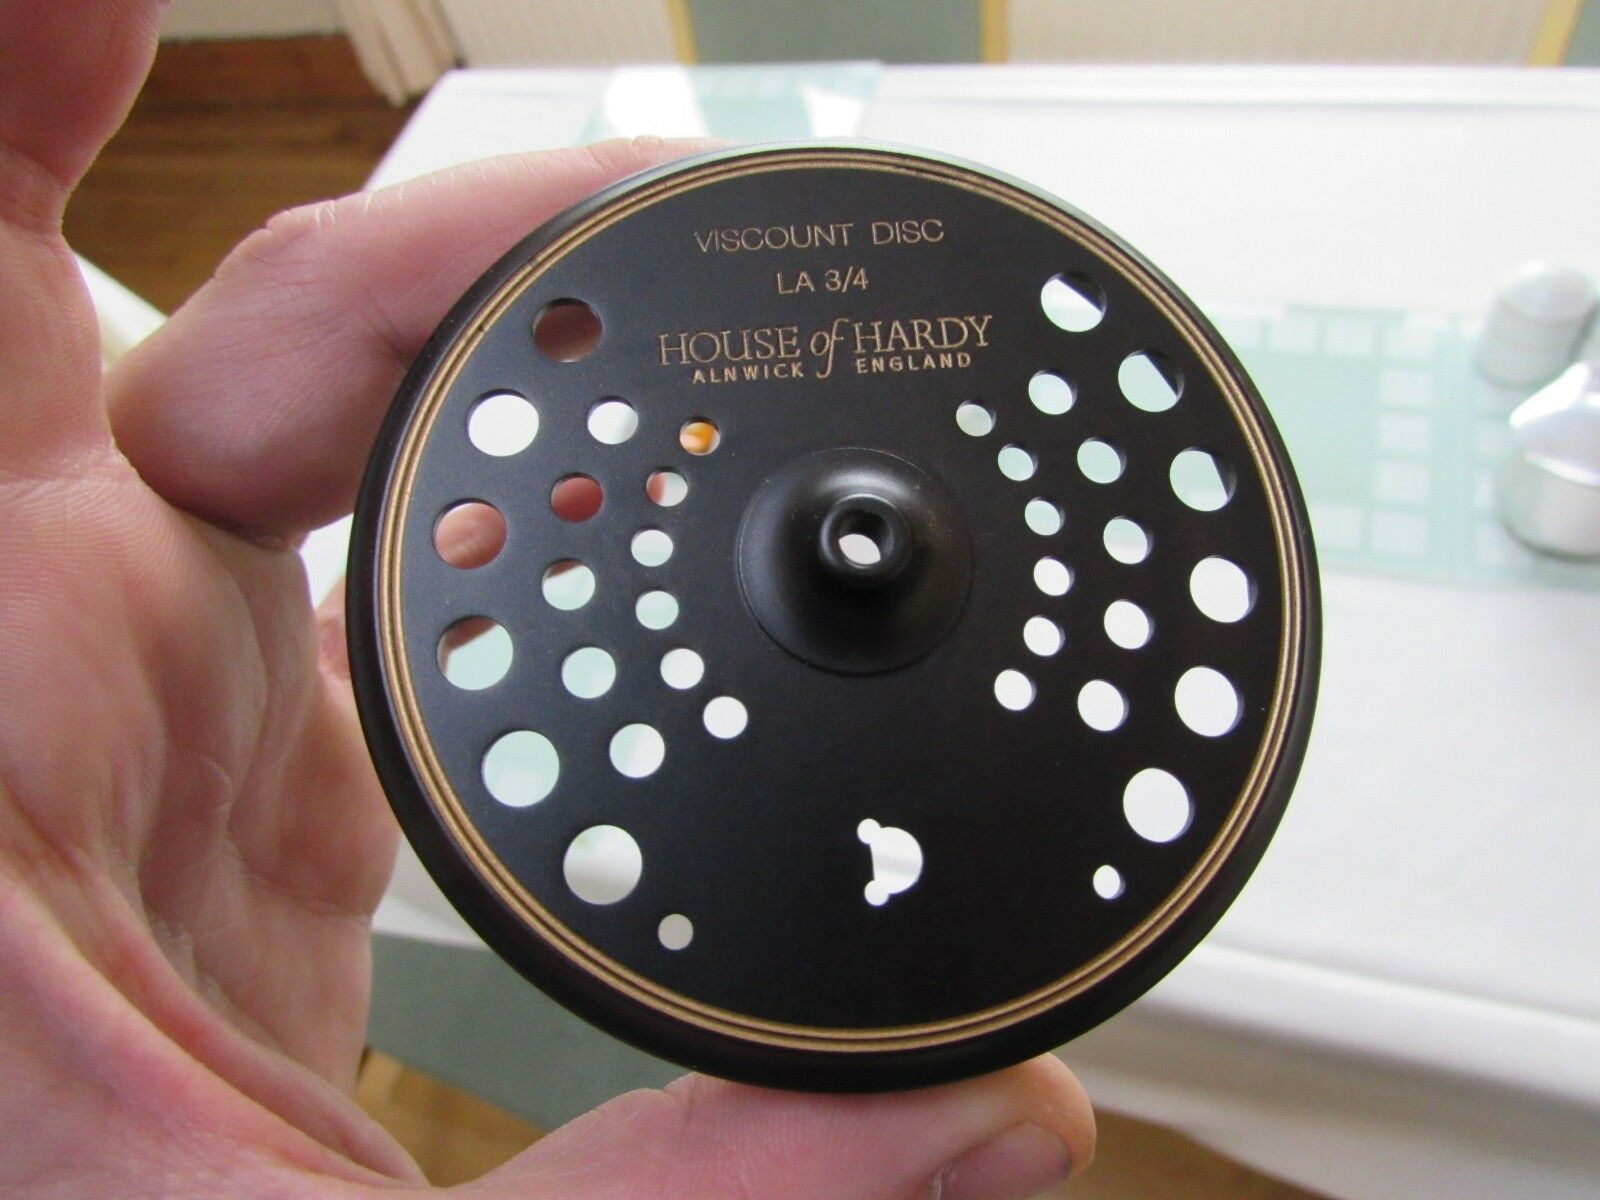 Unused hardy viscount disc LA 3 4 trout fly fishing reel frame only